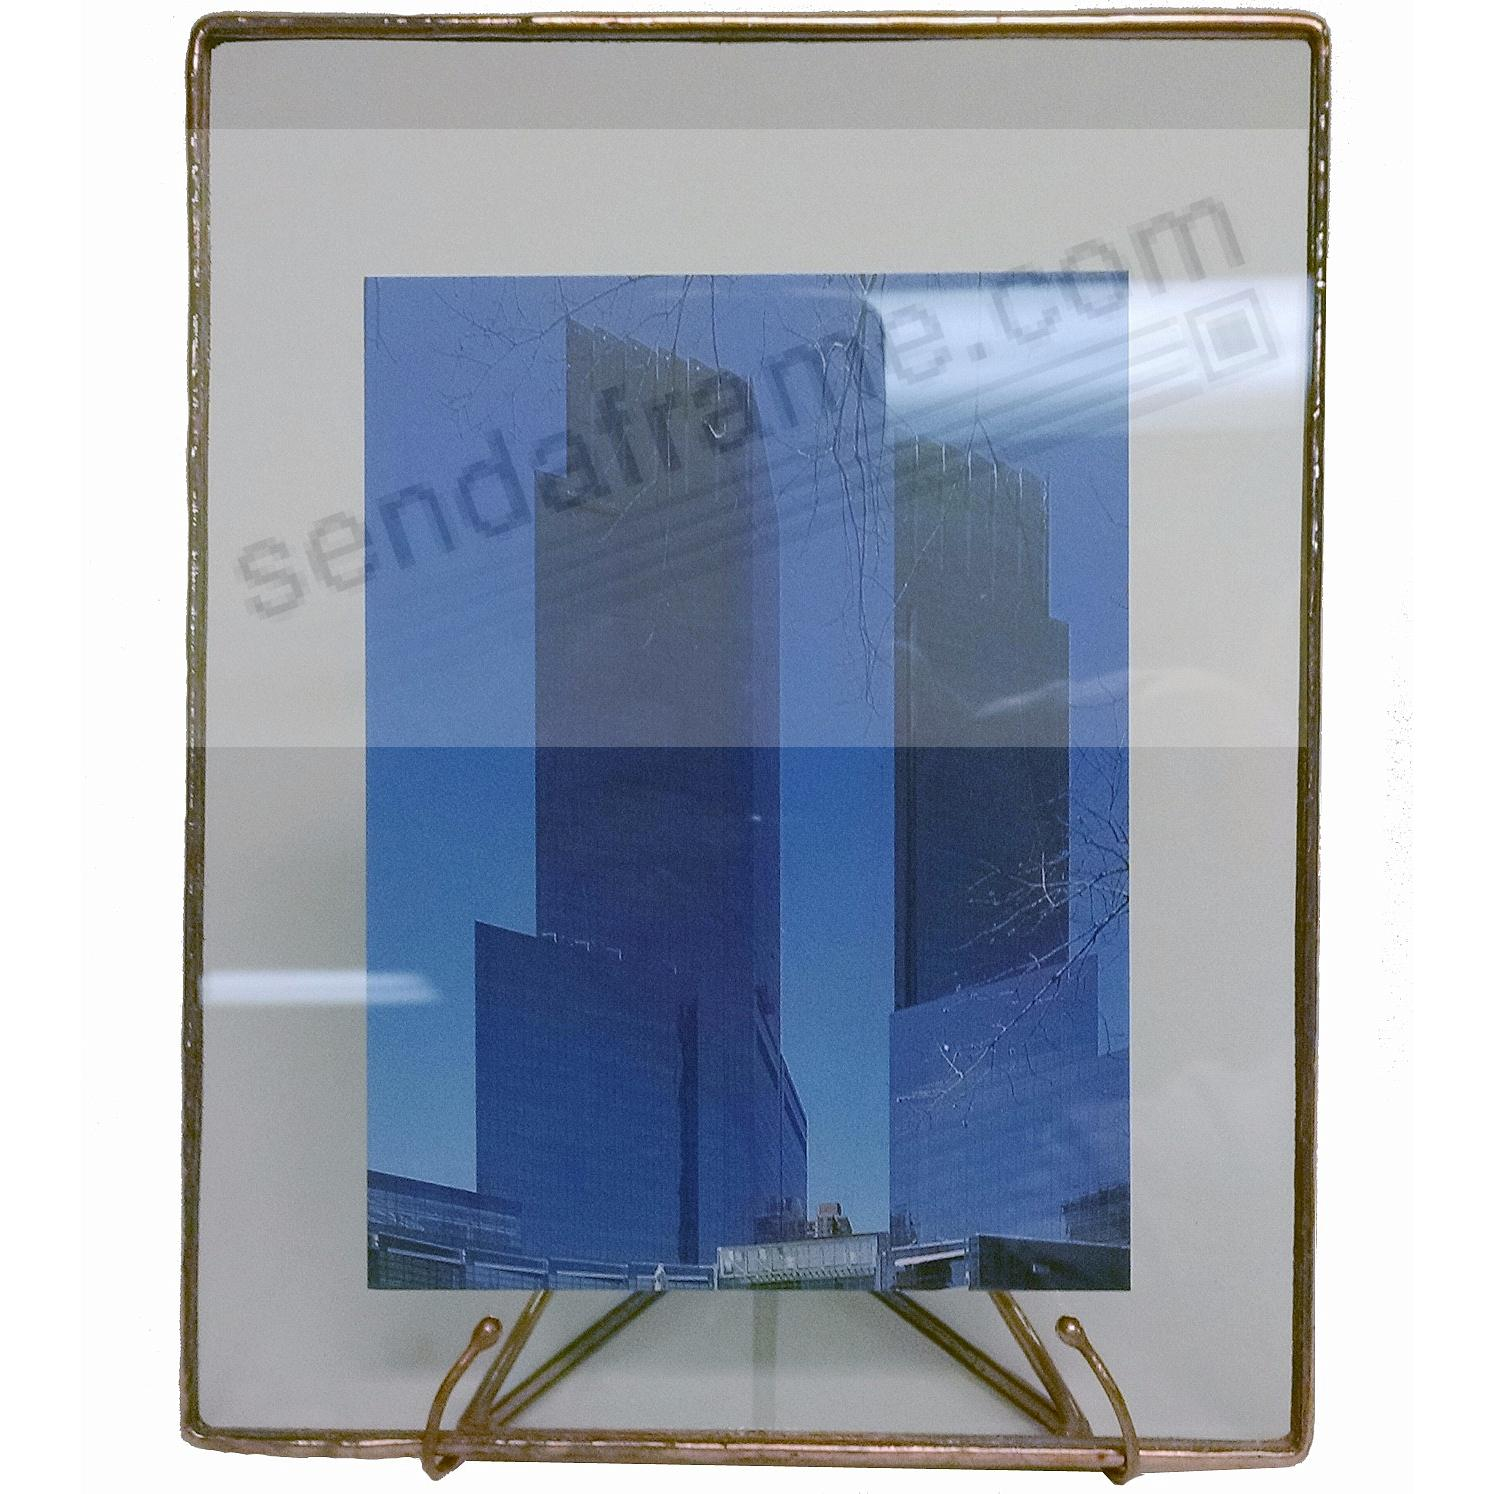 Copper clear glass float frame 5x74x6 by bedford downing copper clear glass float frame 5x74x6 by bedford downing jeuxipadfo Gallery